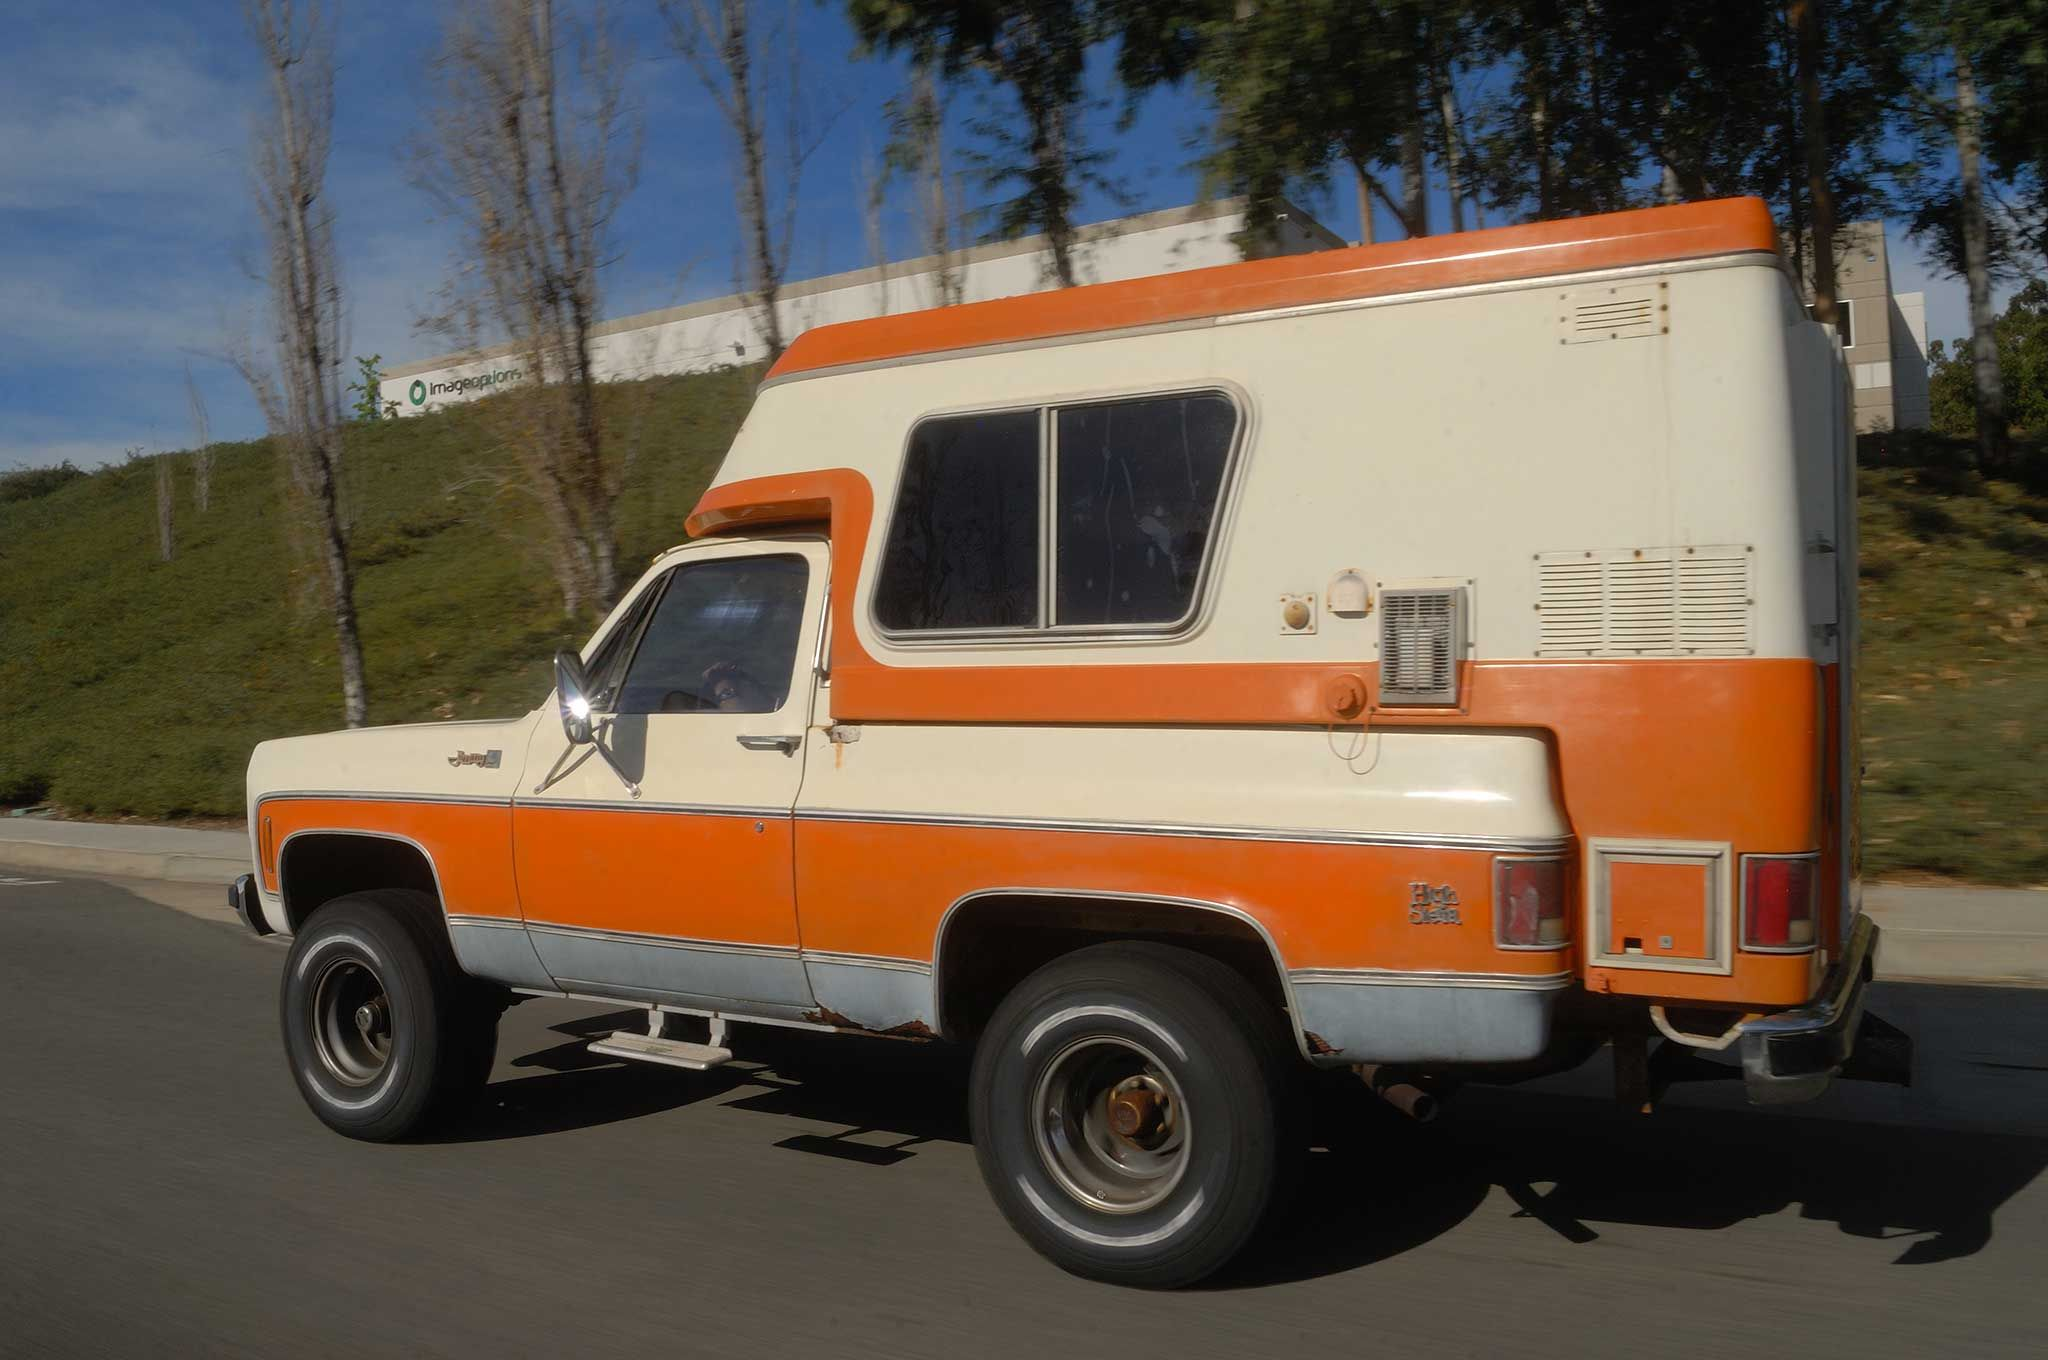 1976 Gmc Jimmy Casa Grande Gmc Sweet Ride Recreational Vehicles